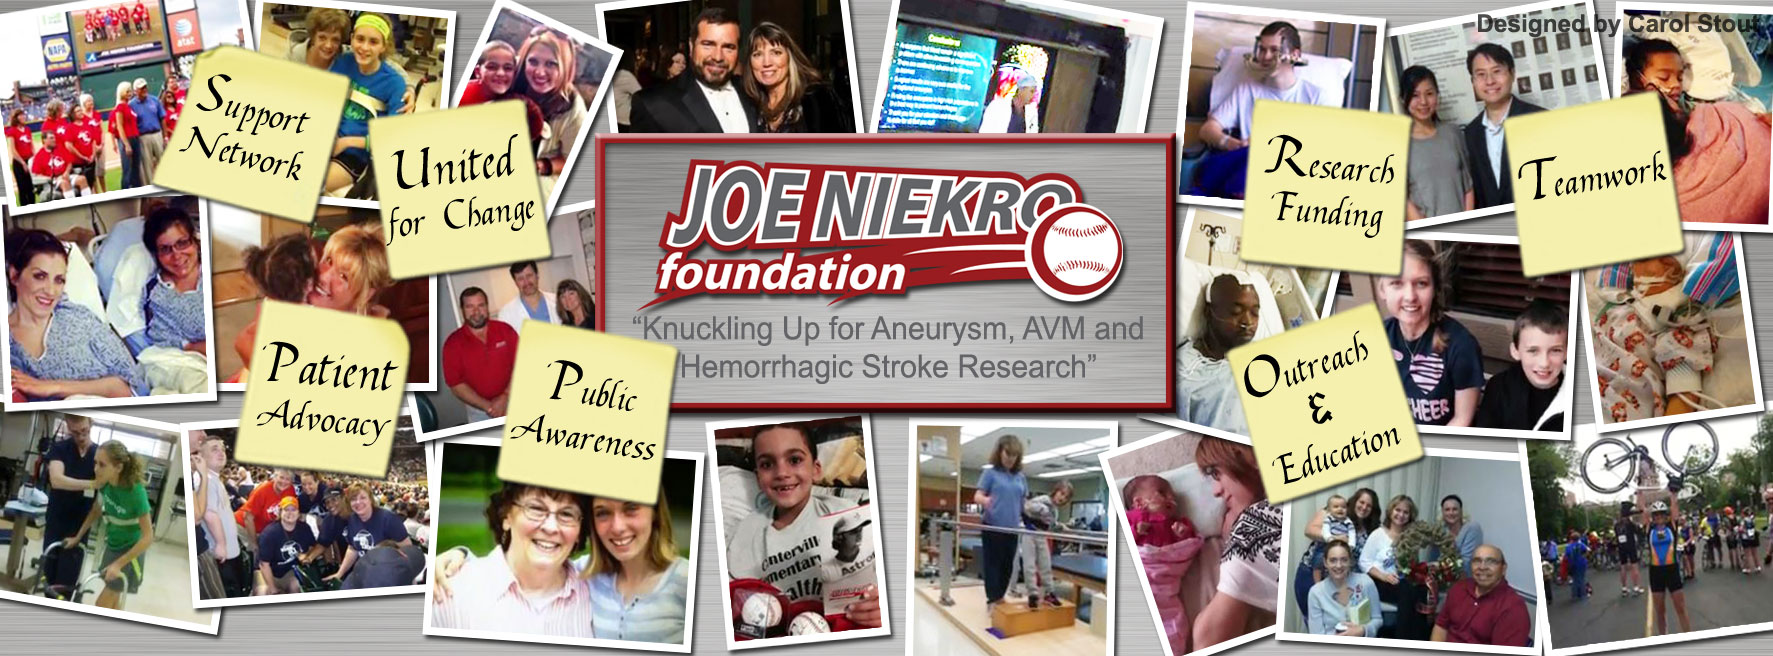 https://www.joeniekrofoundation.com/home-billboards/2631/attachment/survivor-banner-high-res3/